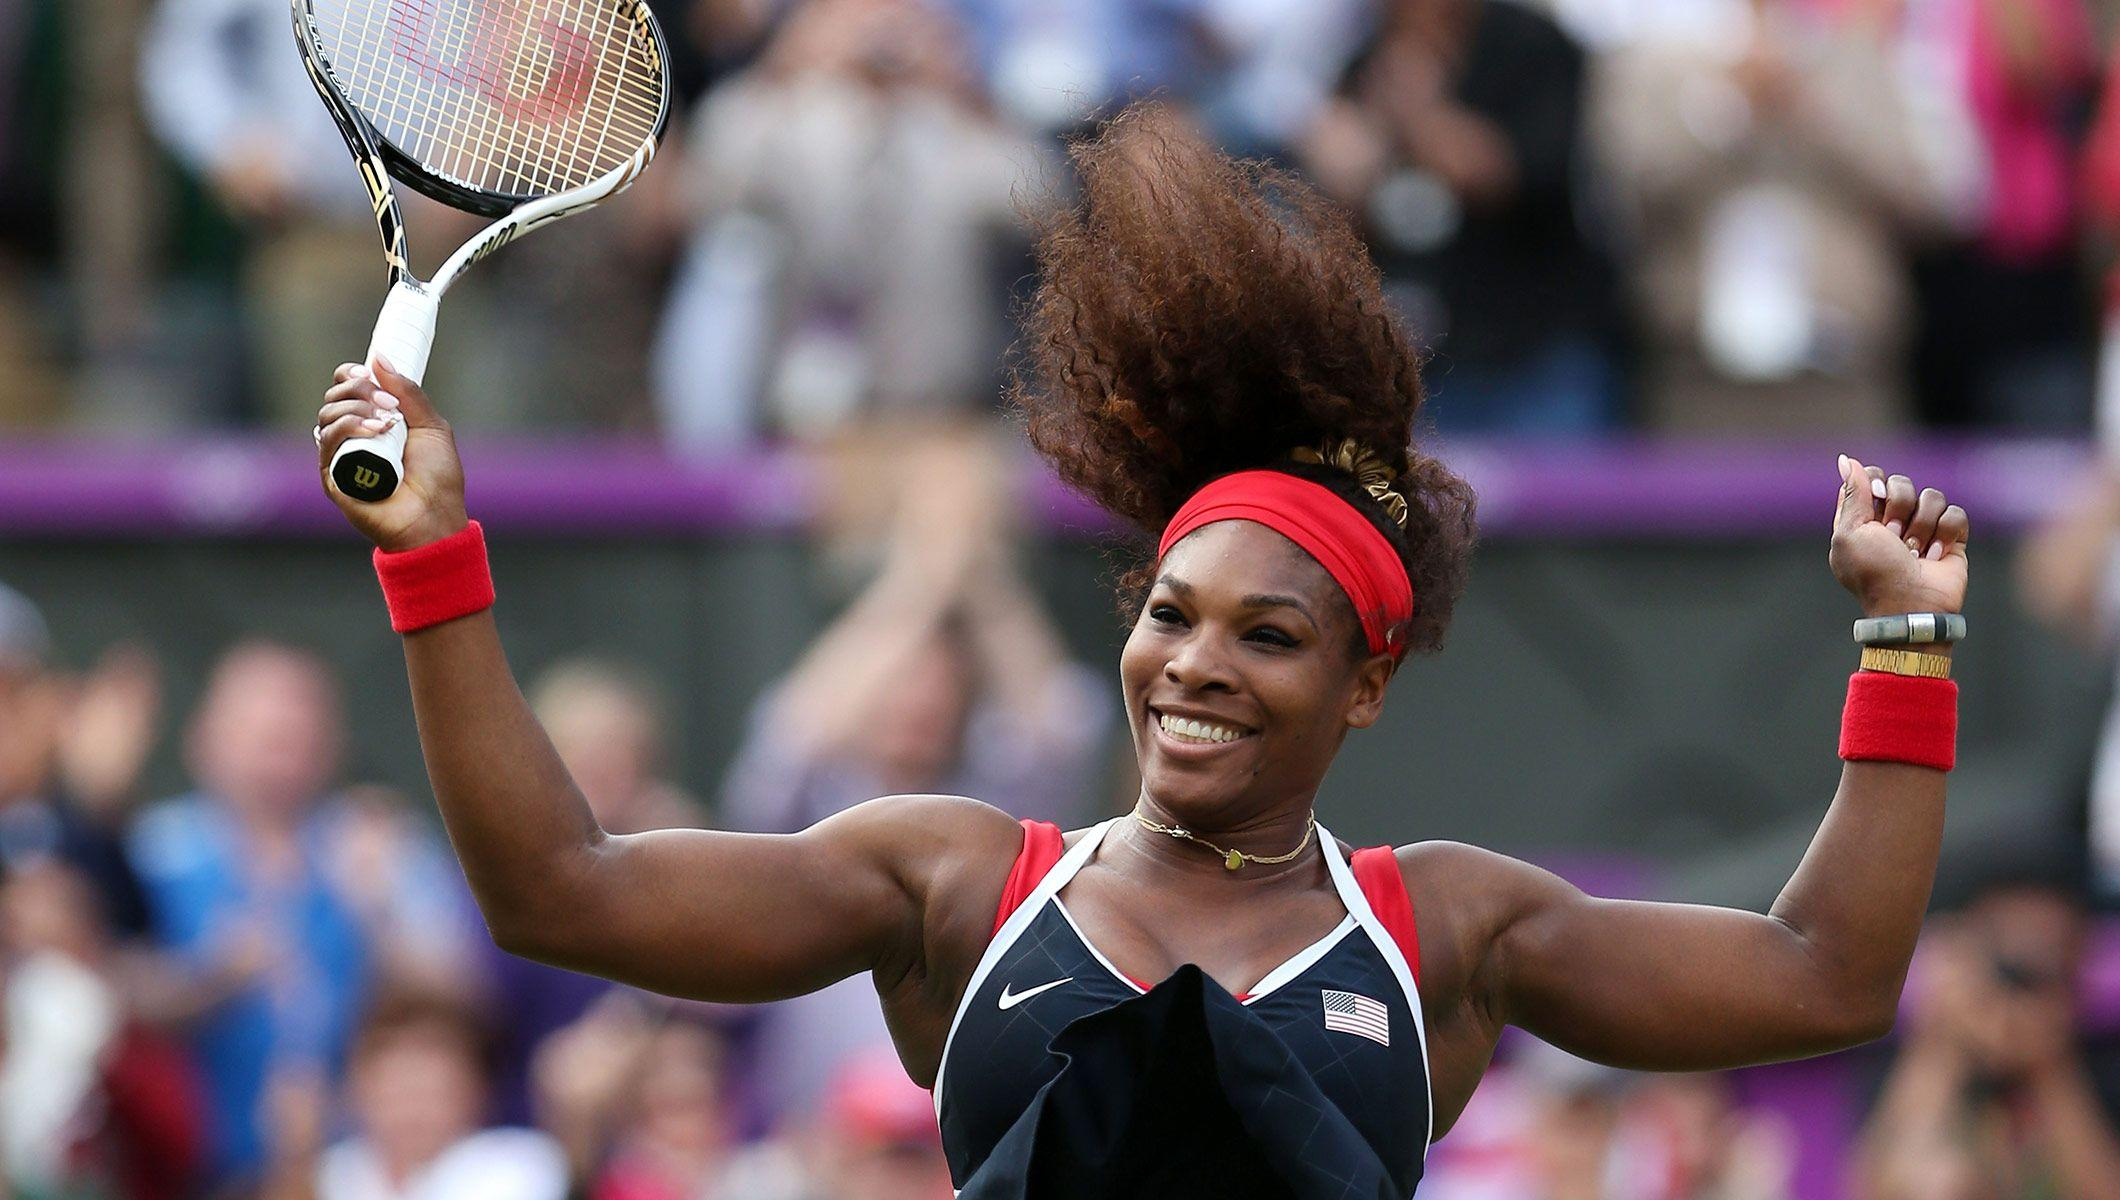 Serena all set for title defences in Rio - Olympic News